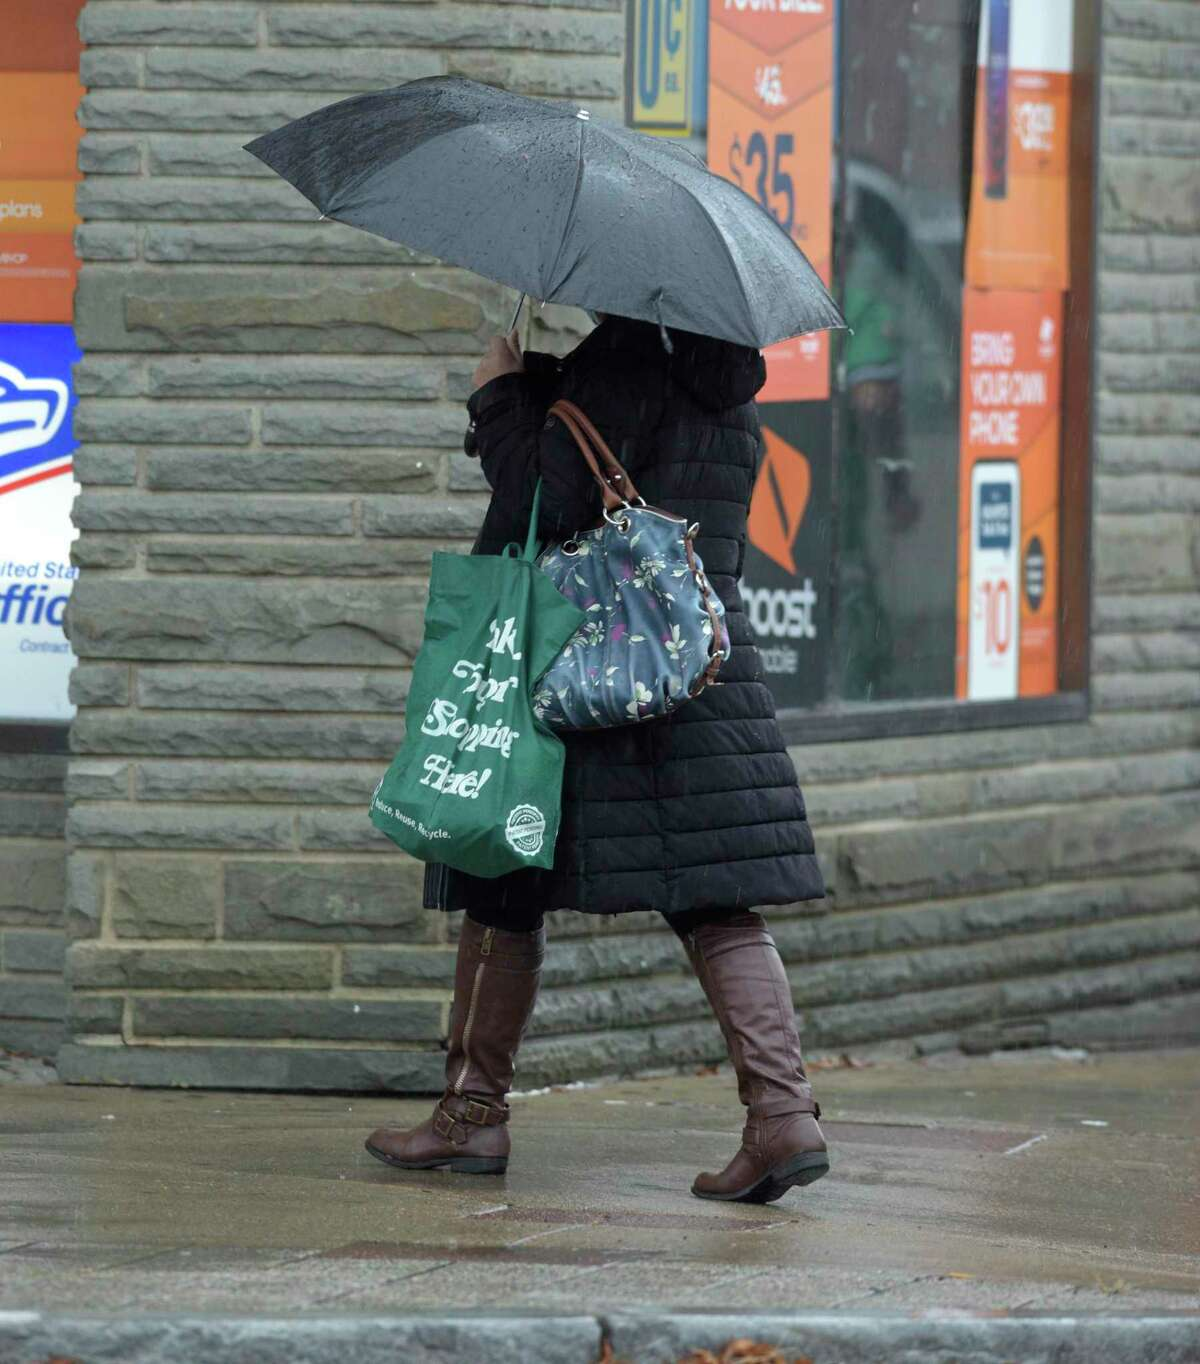 The rain is expected to start by late Sunday afternoon and increasing overnight, according to the National Weather Service.